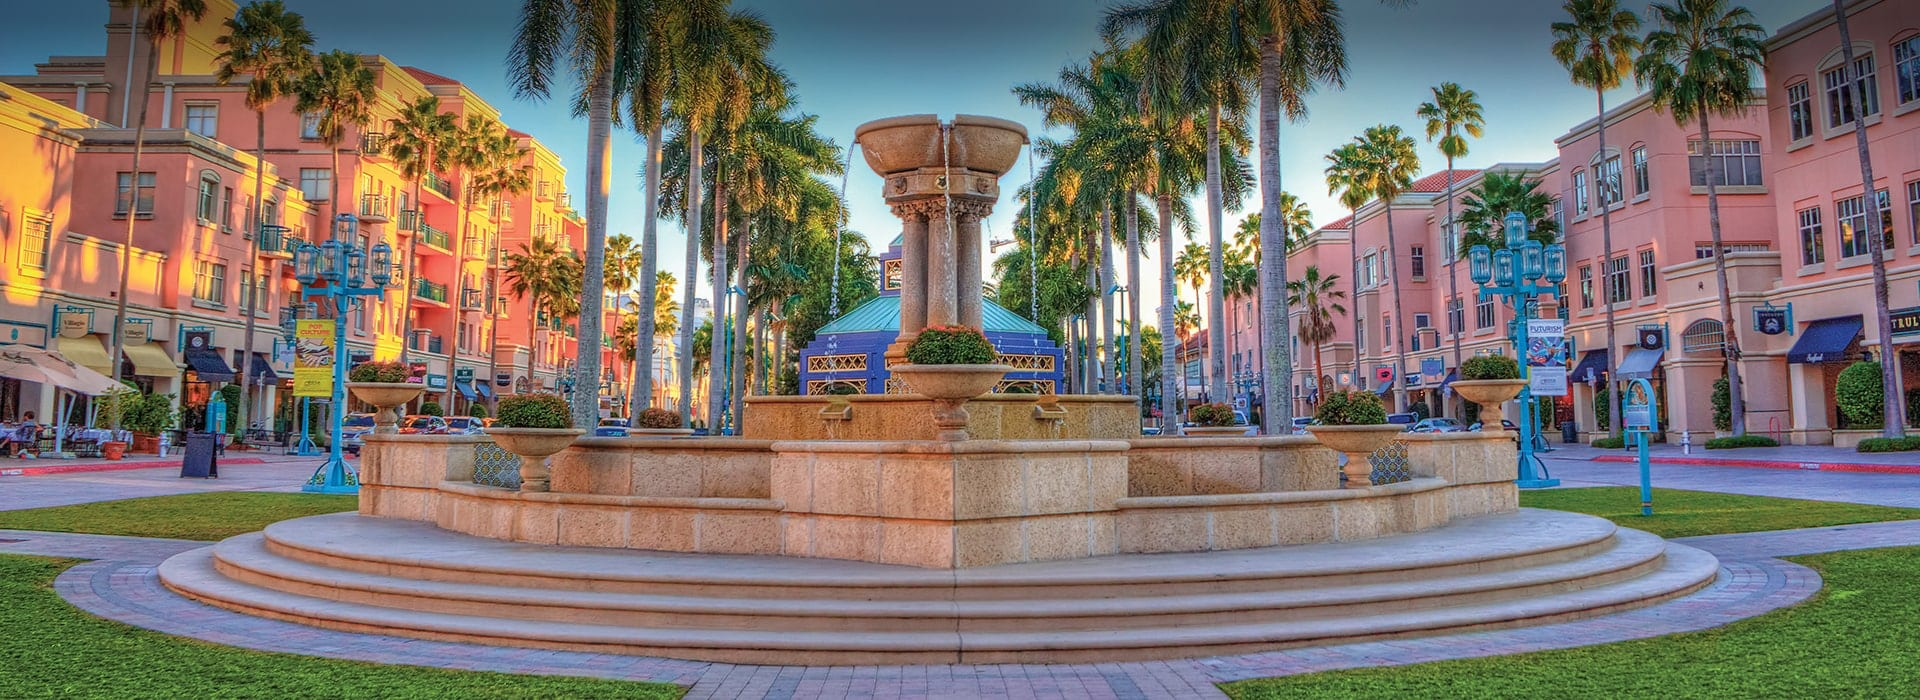 The fountain and pink buildings at Mizner Park Boca Raton